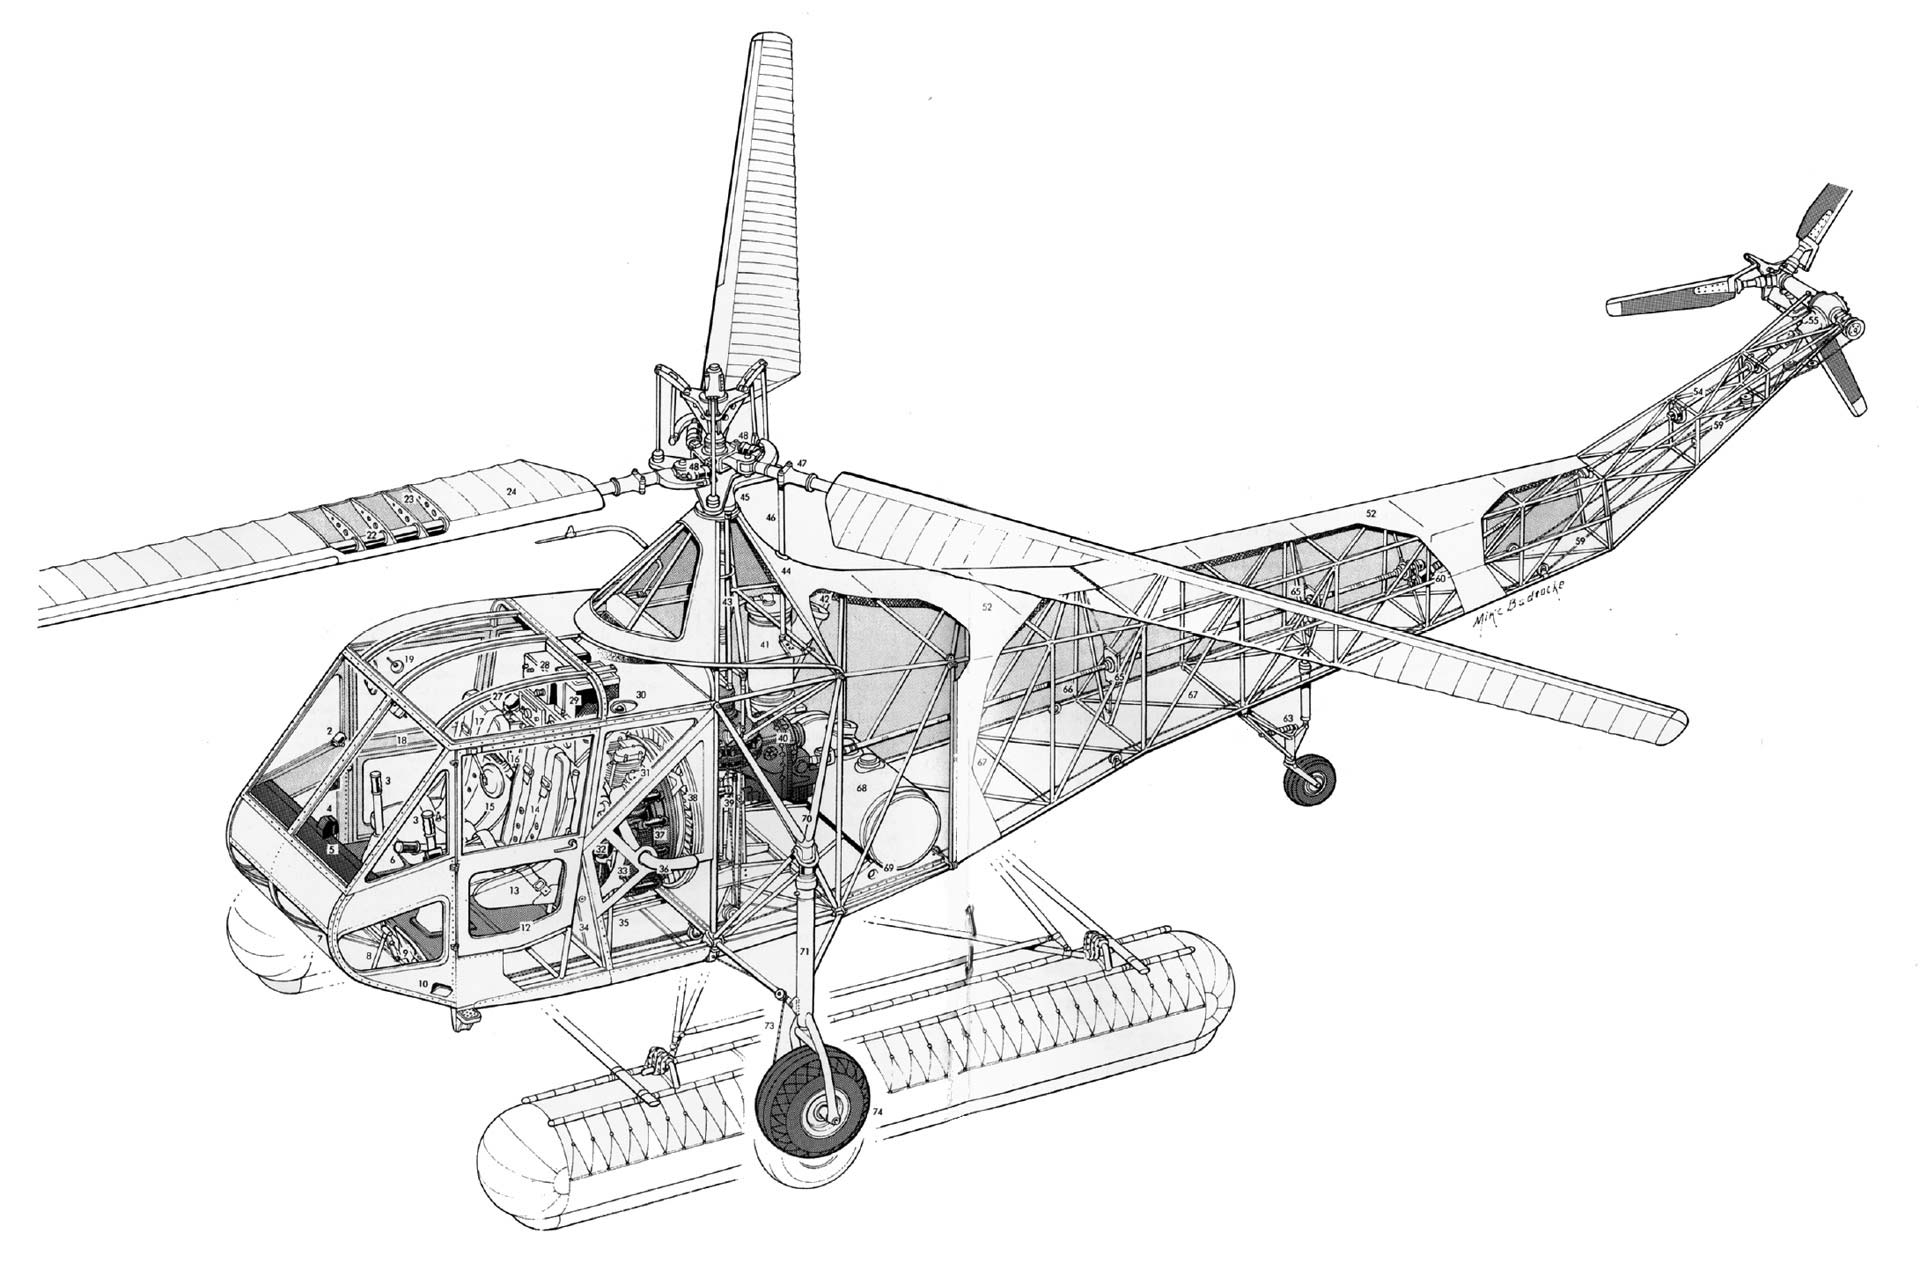 Sikorsky R 4 Cutaway Drawing In High Quality